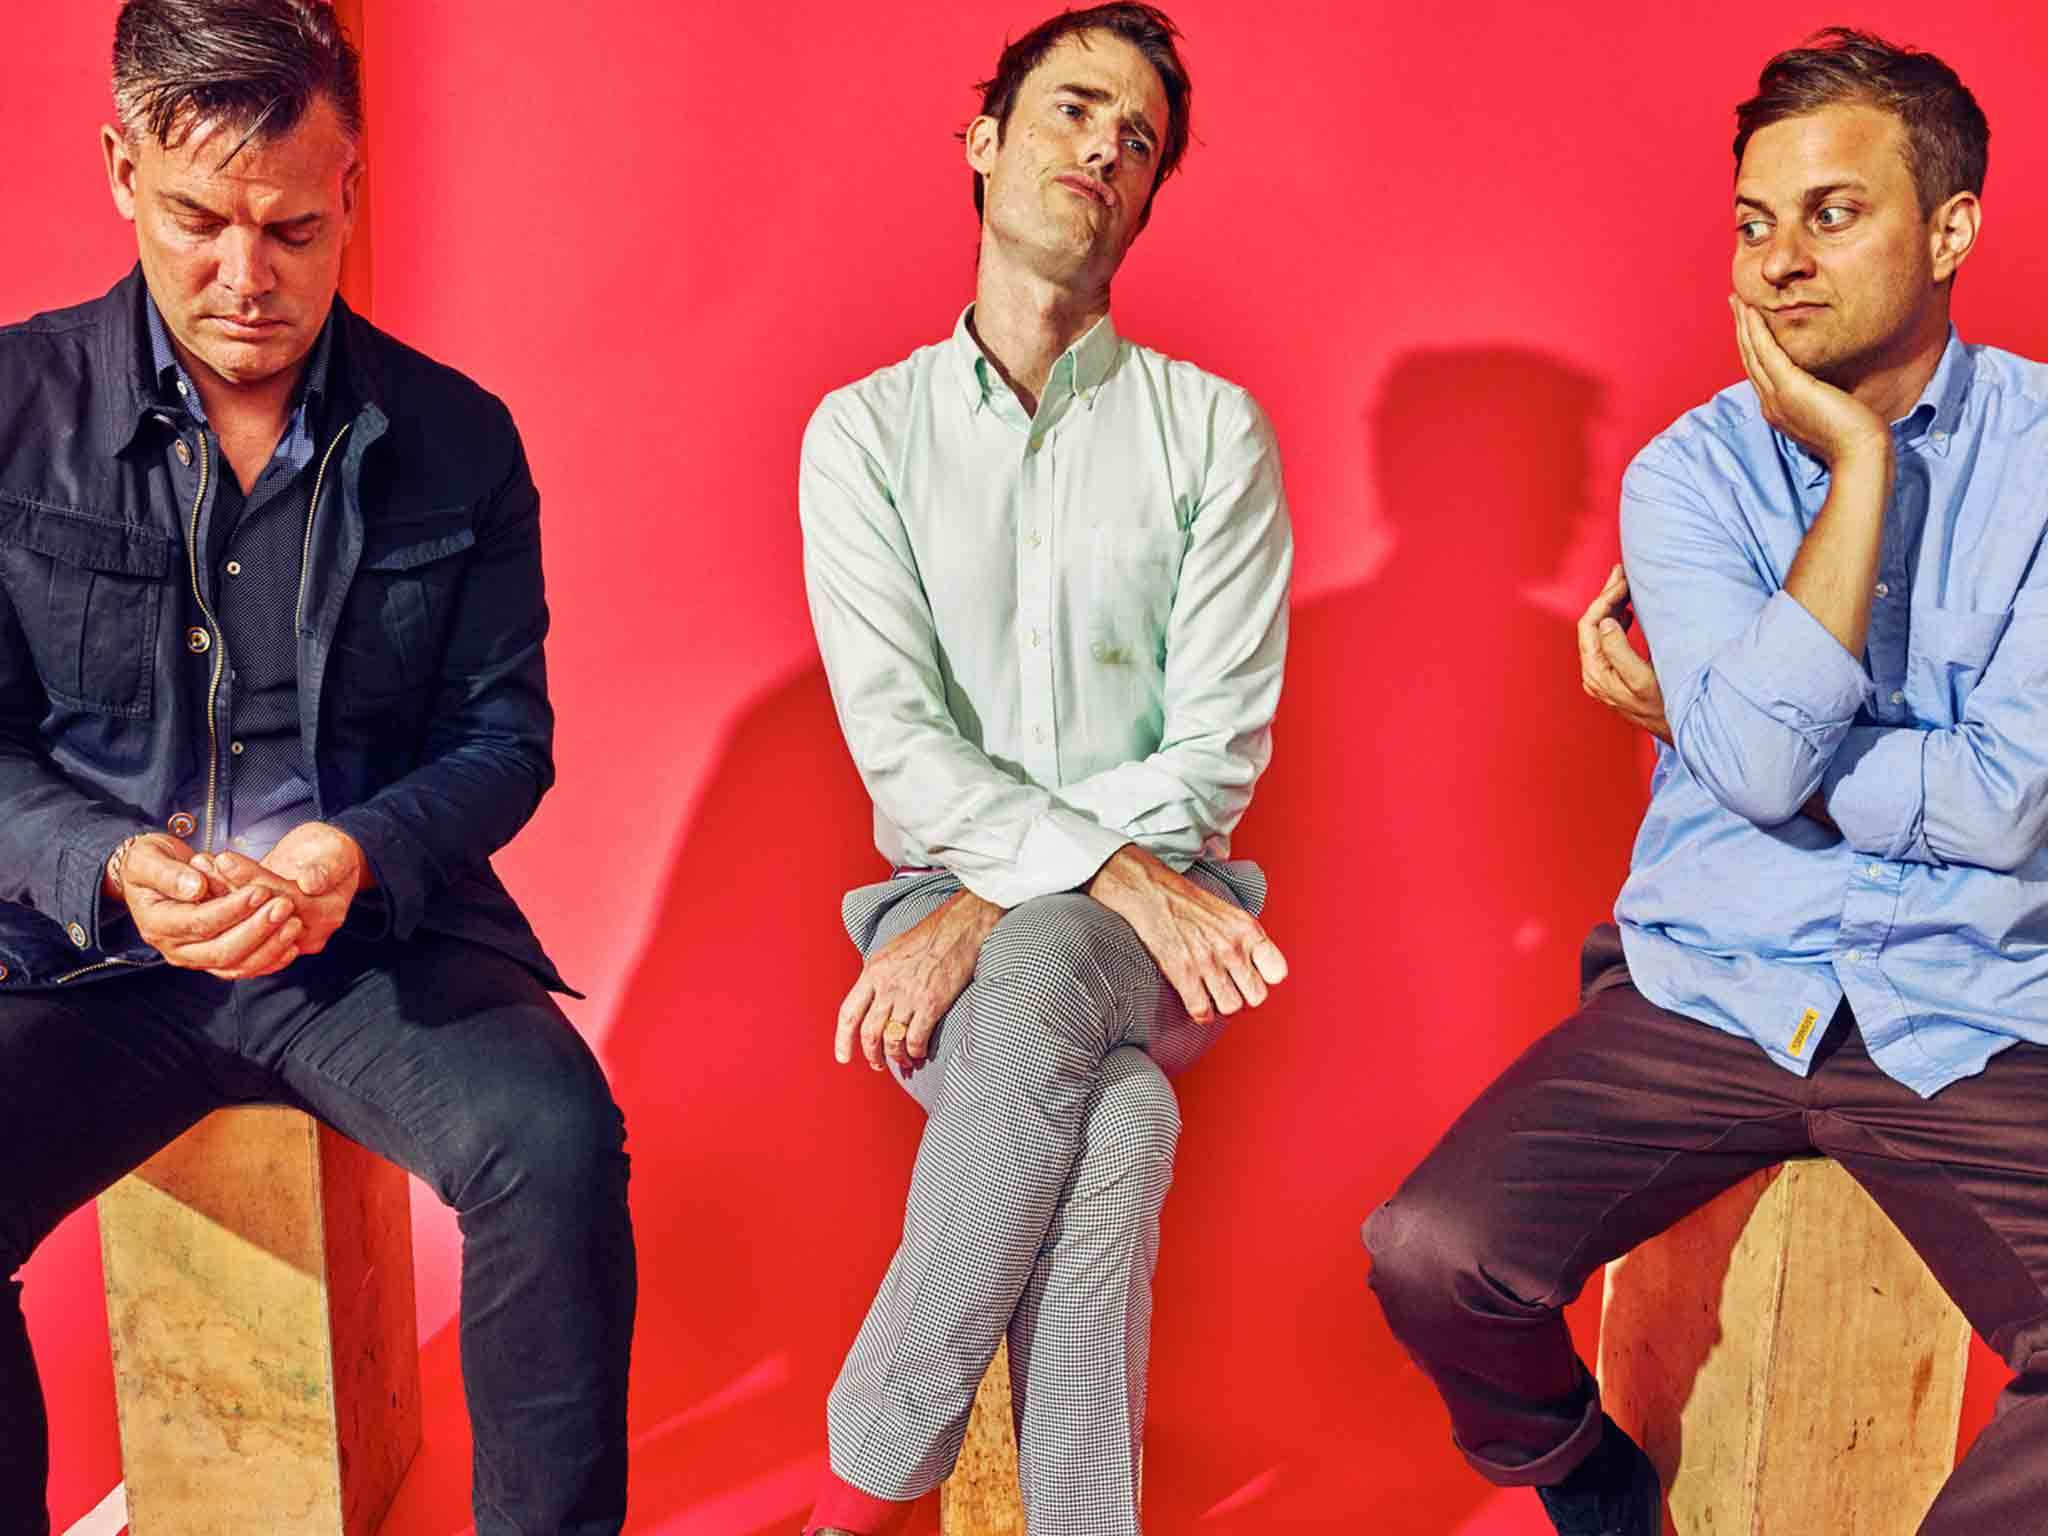 The 50 best albums of 2015 - Battles ' 'La Di Da Di'